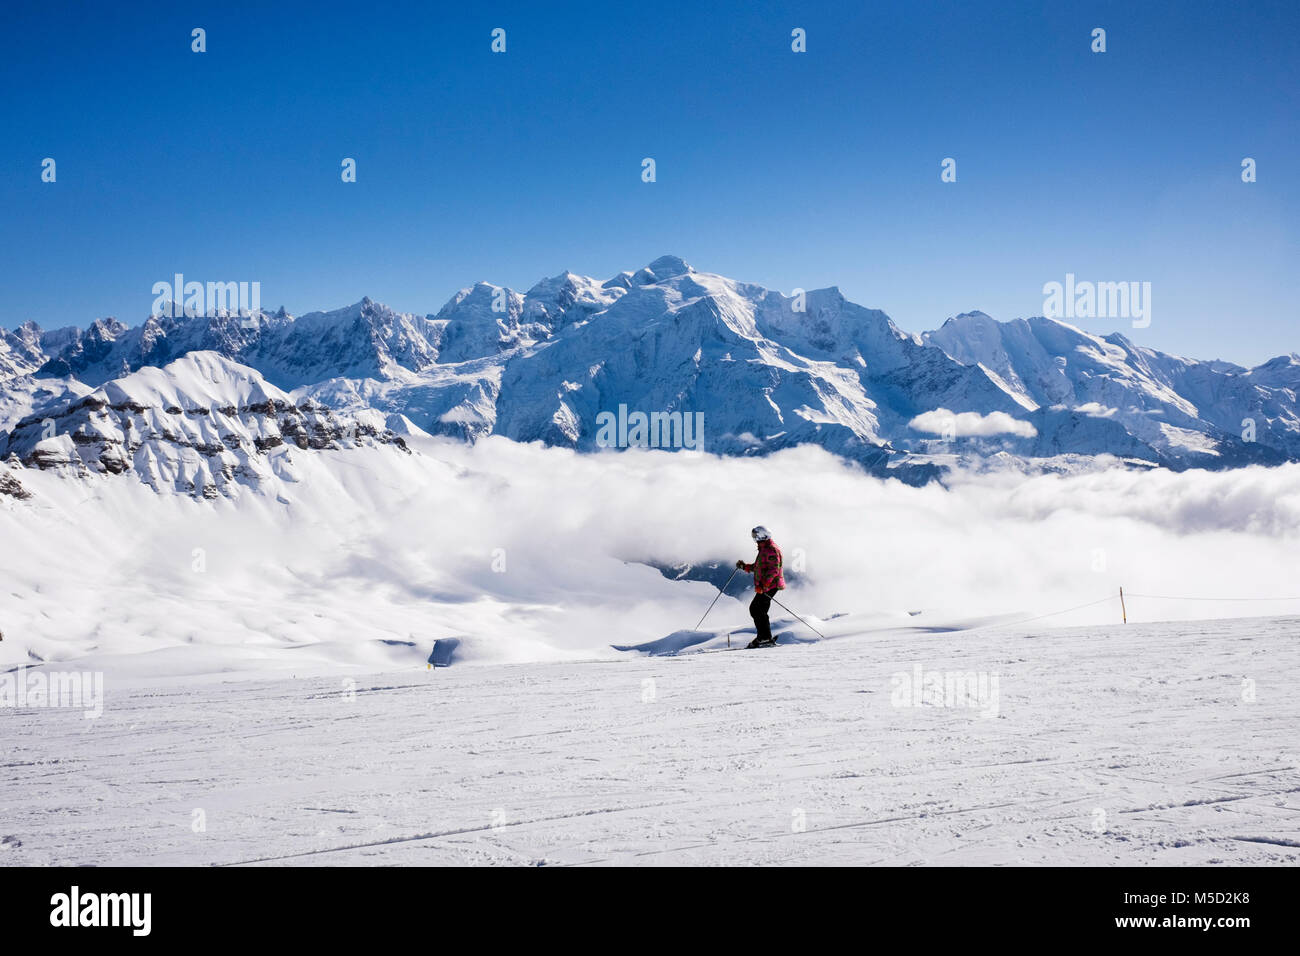 One skier skiing on snow ski slope with Mont Blanc as backdrop in French Alps. Tetes des Lindars, Flaine, Haute - Stock Image